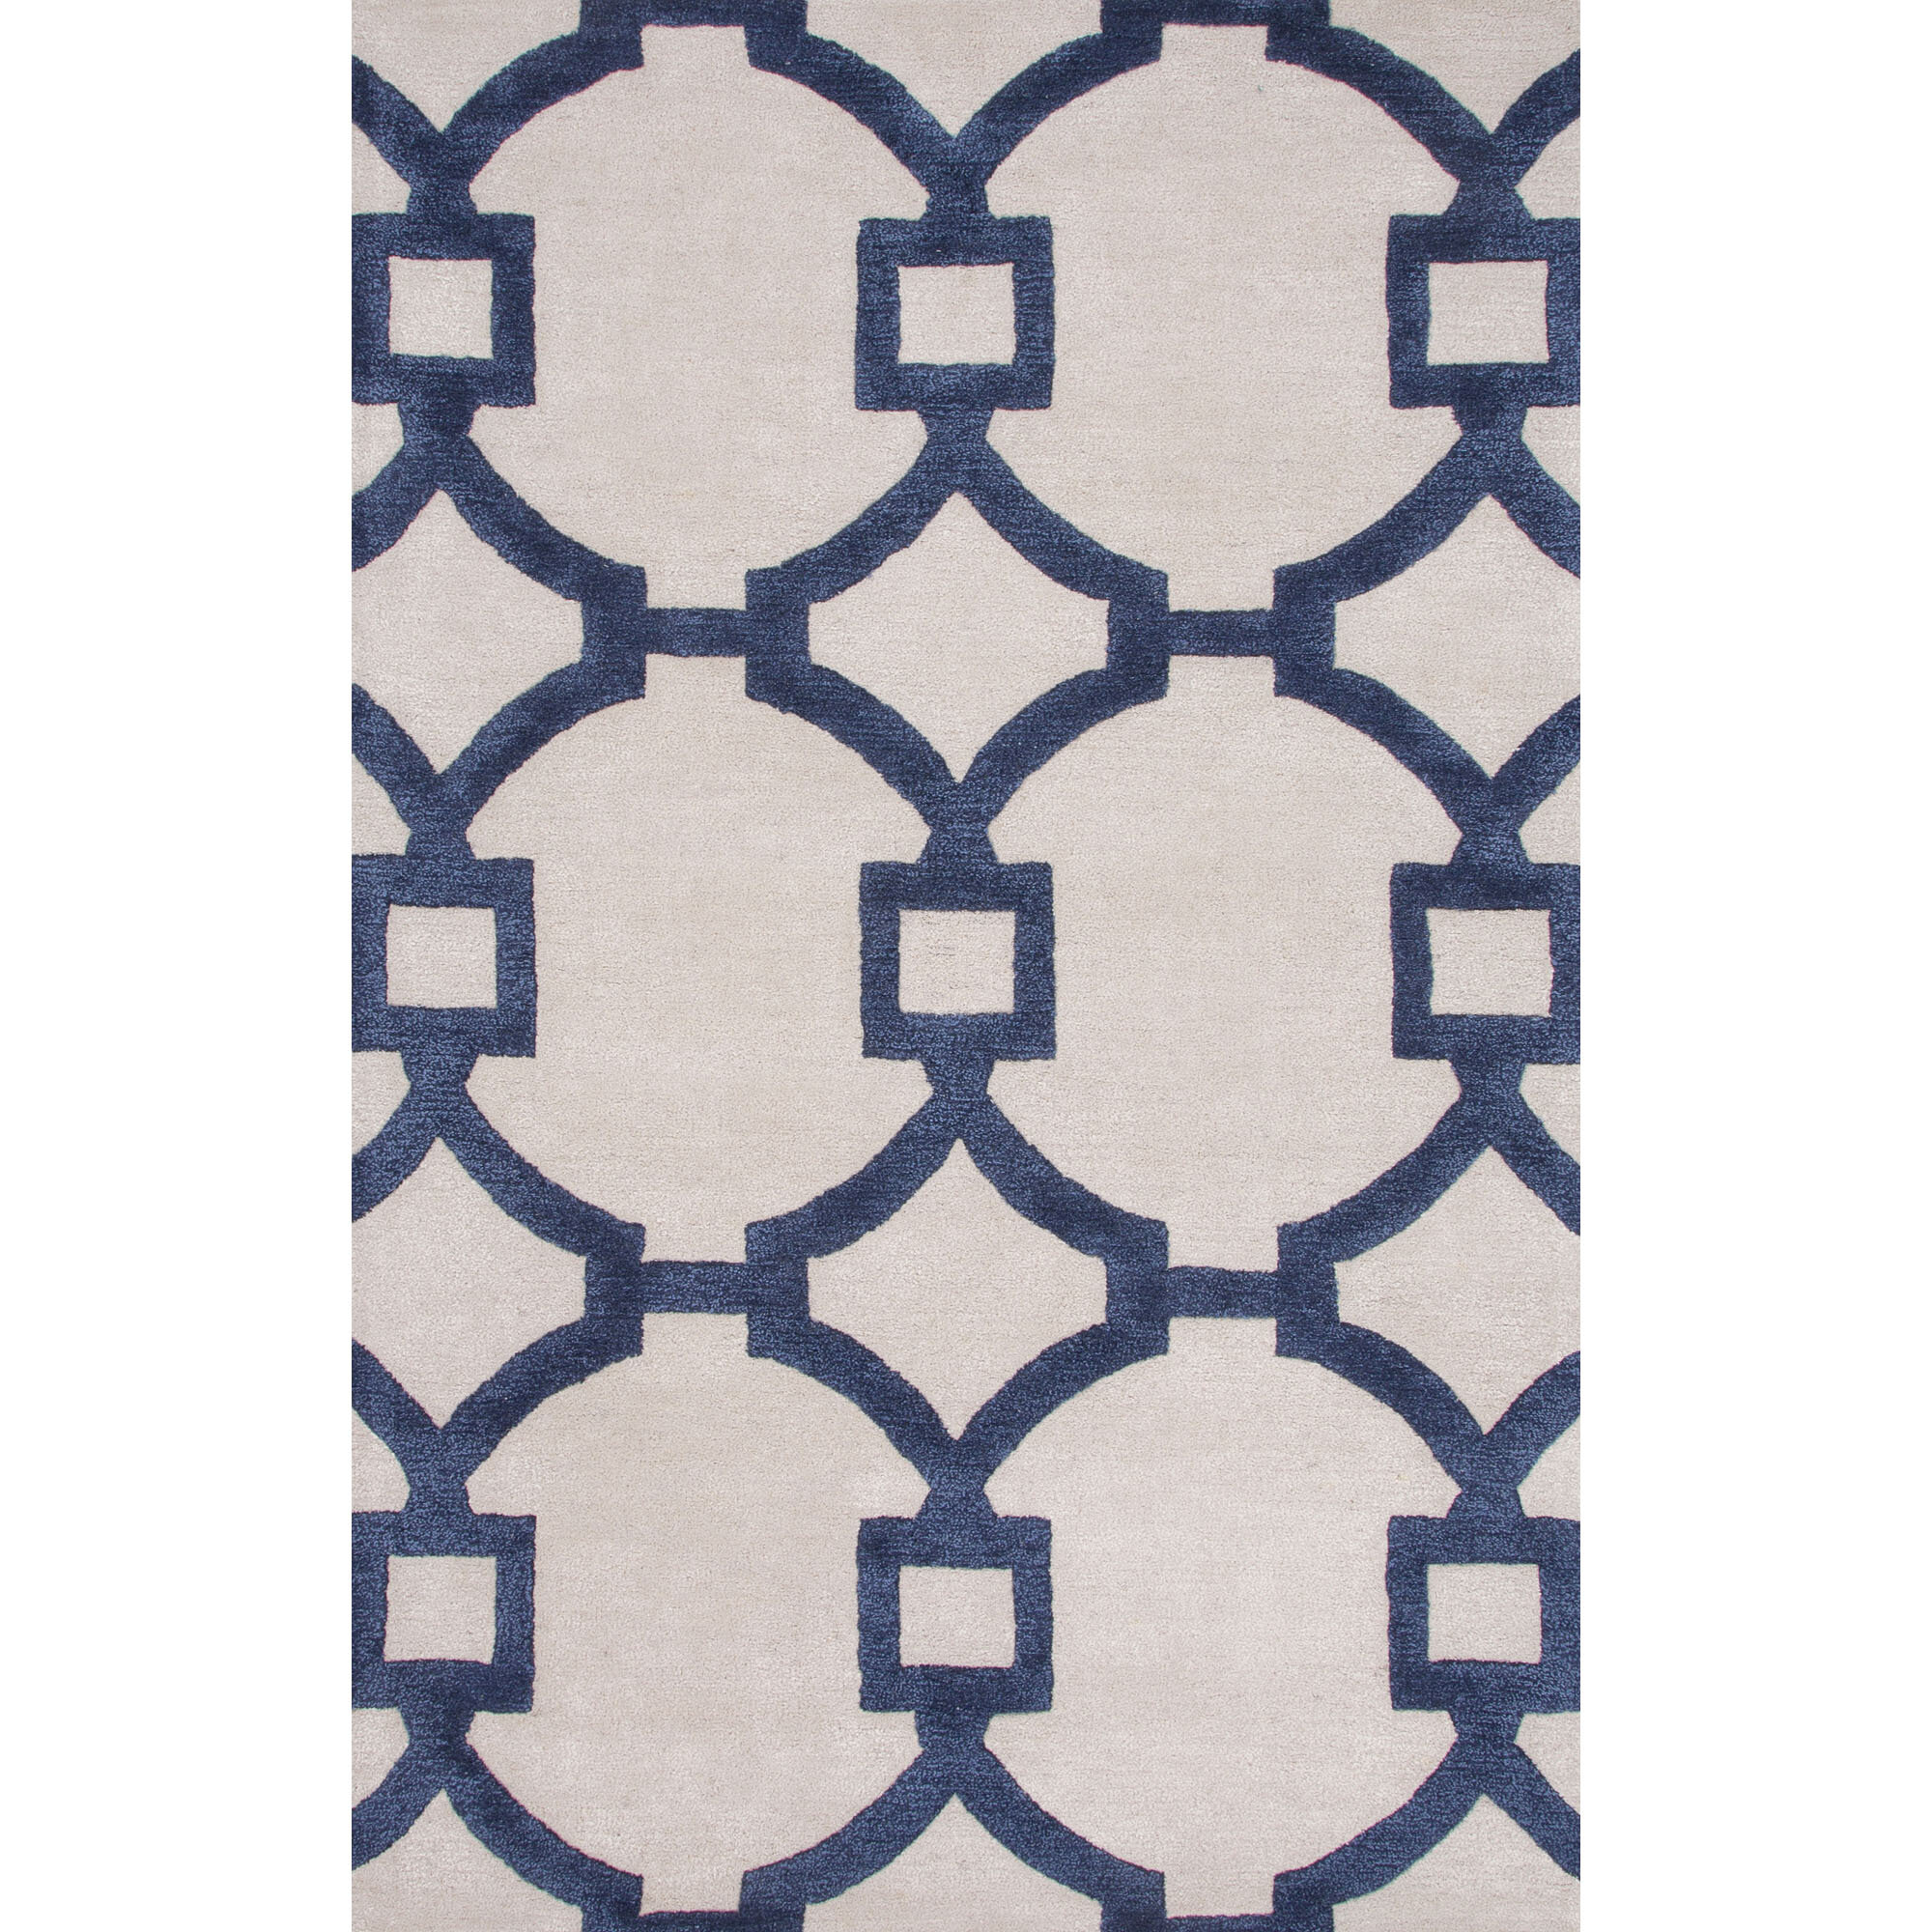 rug rugs products momeni caspian caspicap gray machine cap benjamin turkish made